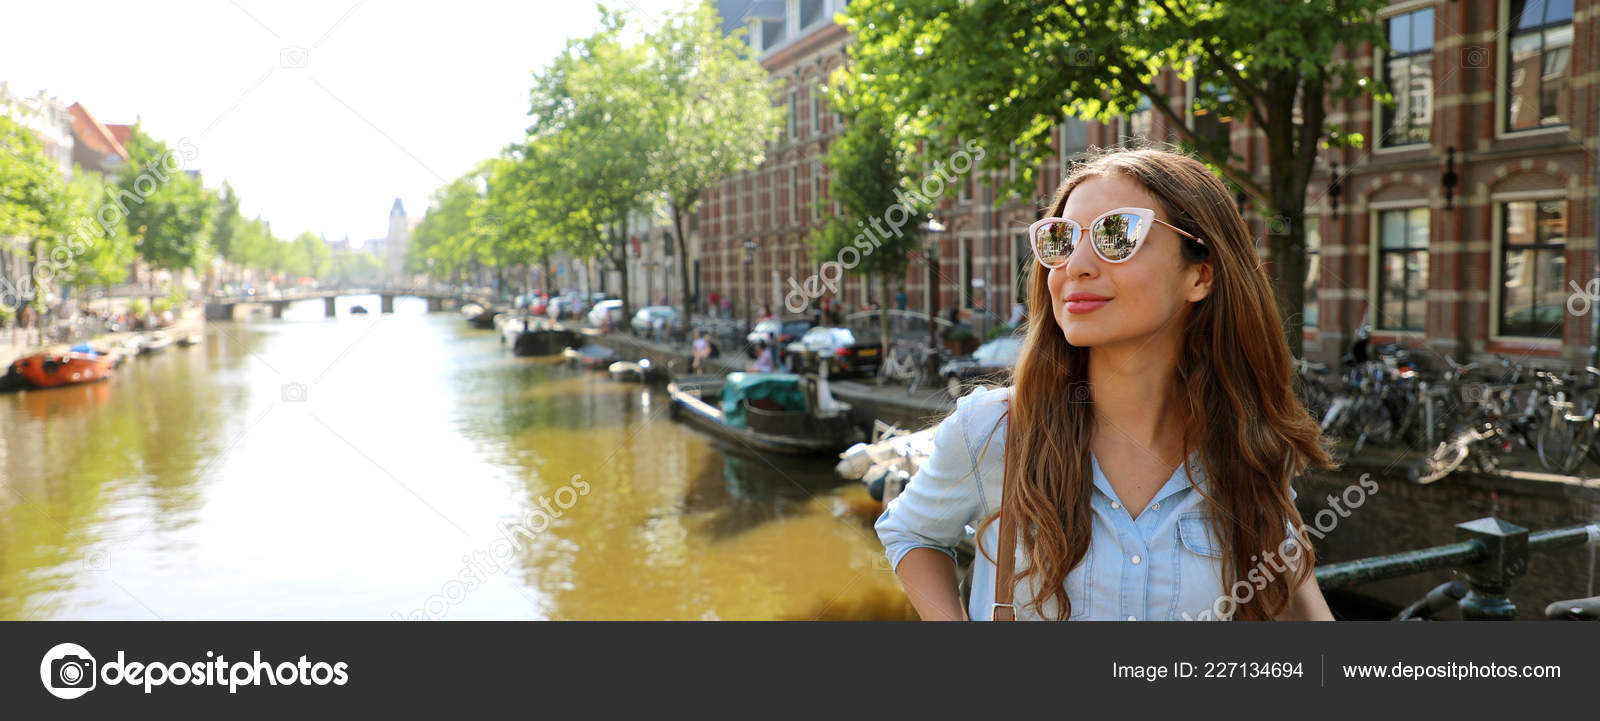 bae55bf2c48d4 Portrait Beautiful Cheerful Model Sunglasses Looking Side One Typical  Amsterdam — Stock Photo